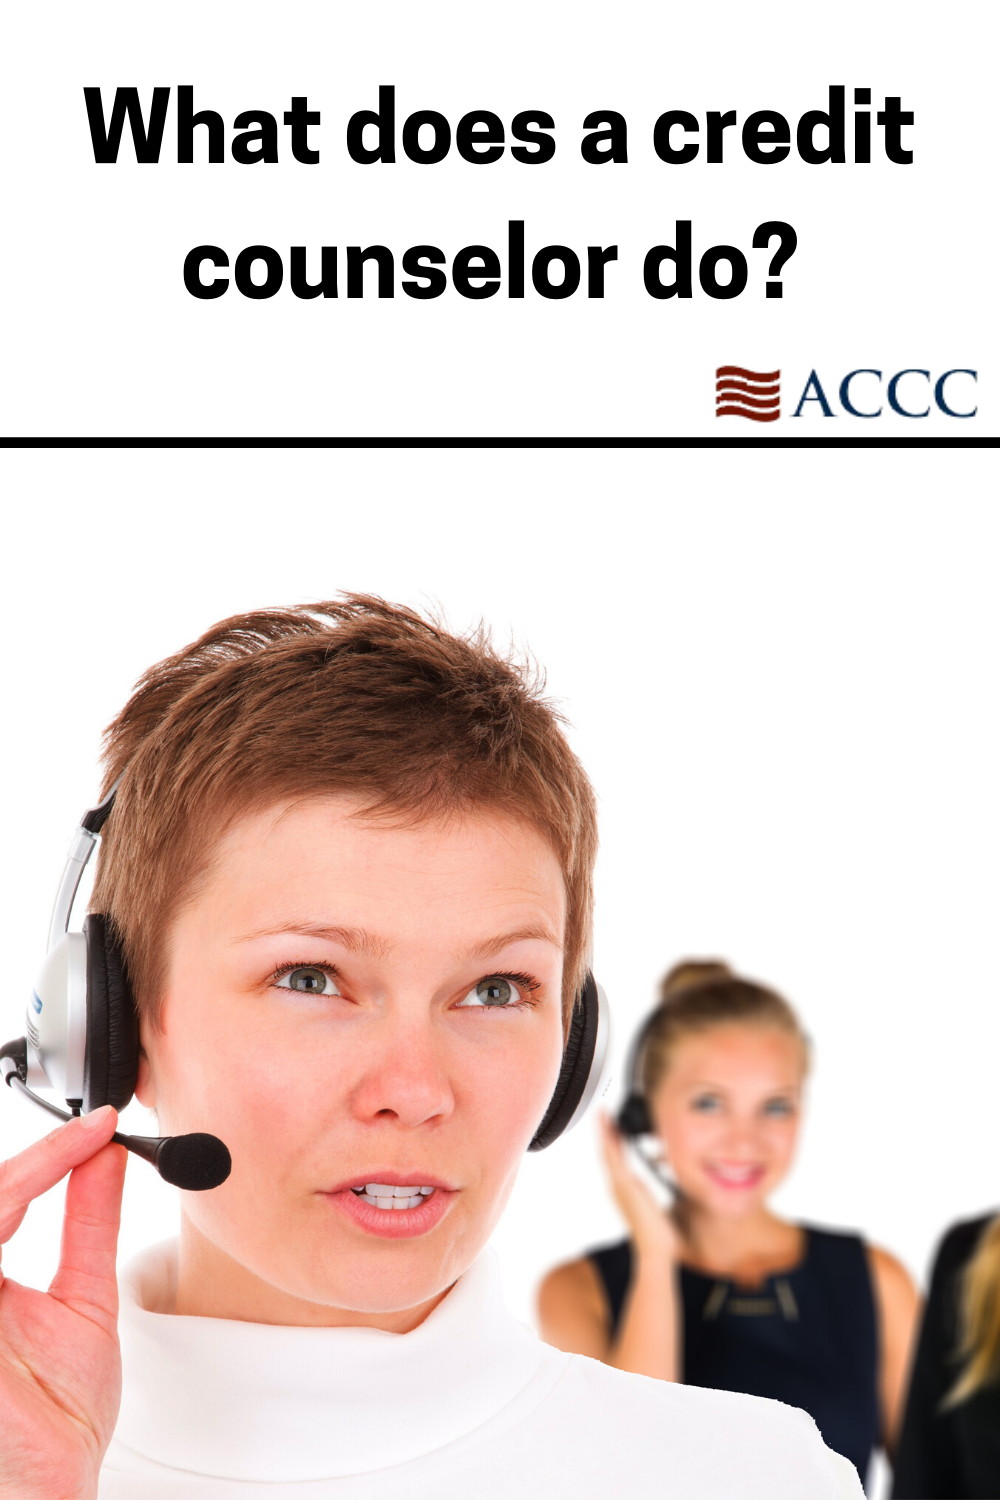 What Does A Credit Counselor Do Consumer Credit Credit Counseling Debt Management Plan Counselors